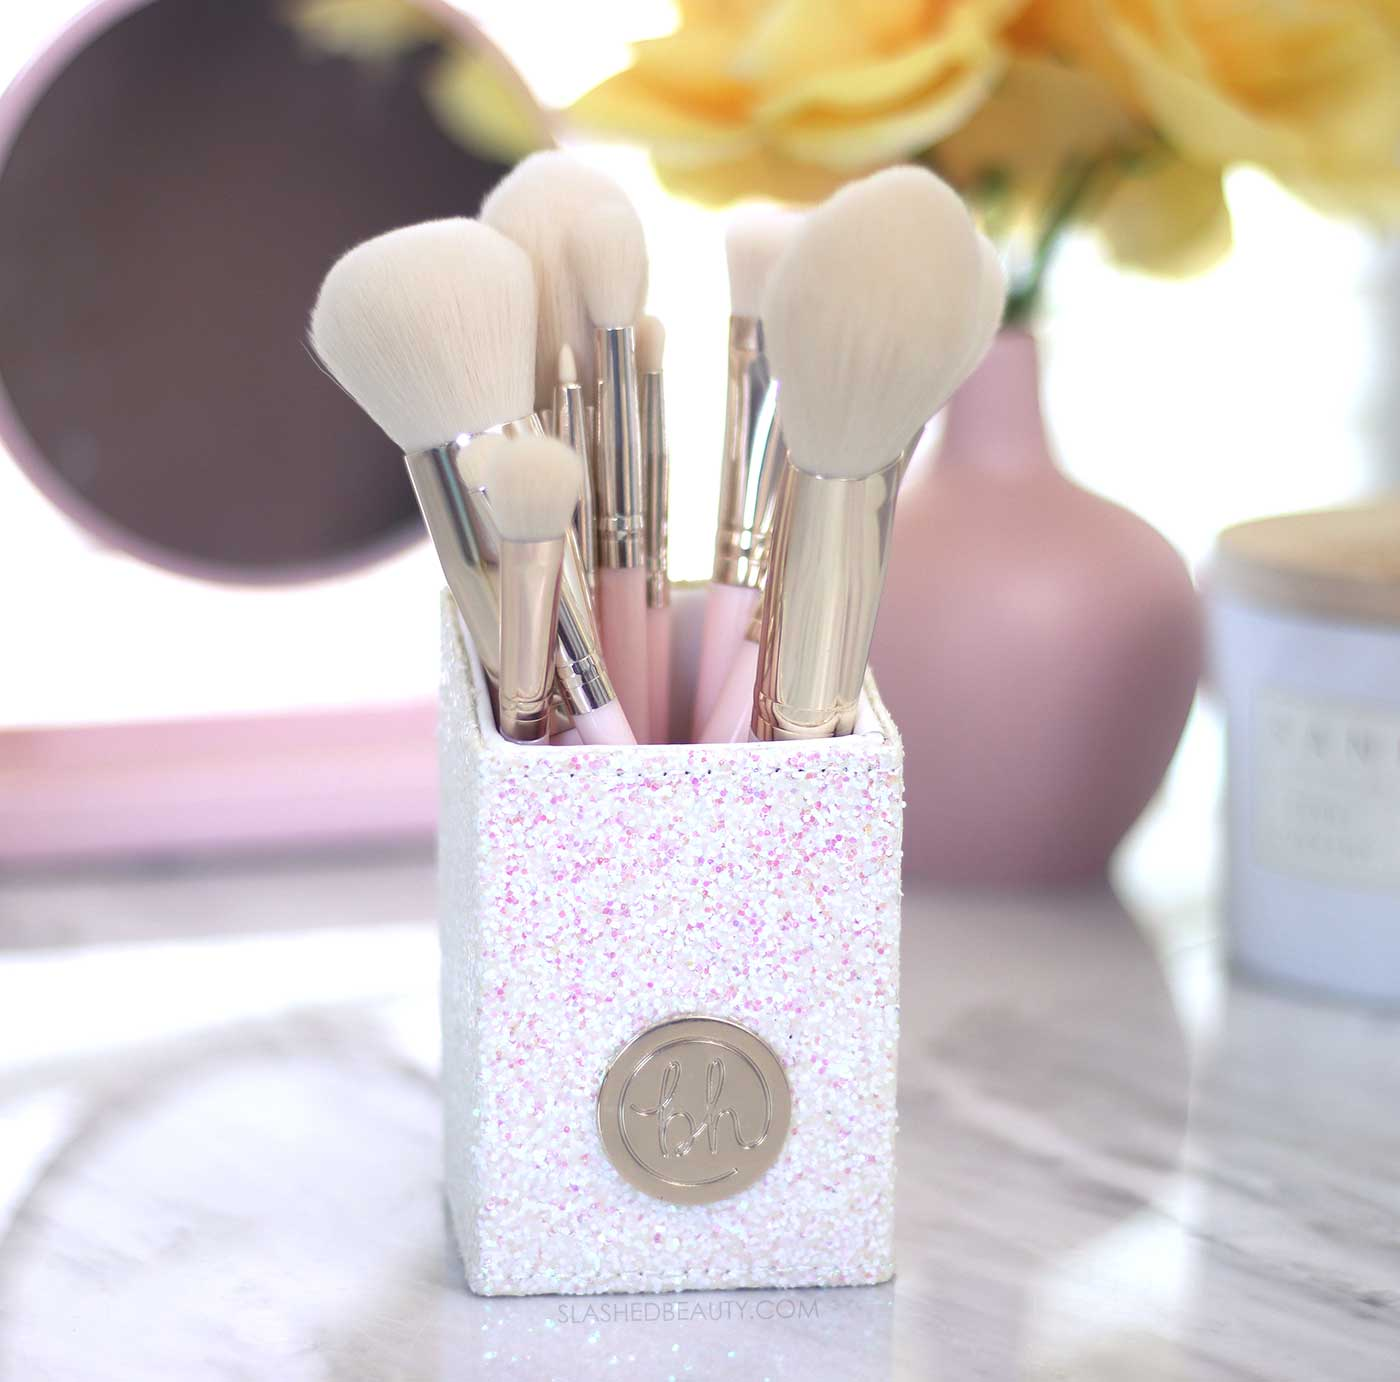 Are BH Cosmetics Brushes Good? | The 4 Best Brands for Budget Makeup Brushes | Slashed Beauty